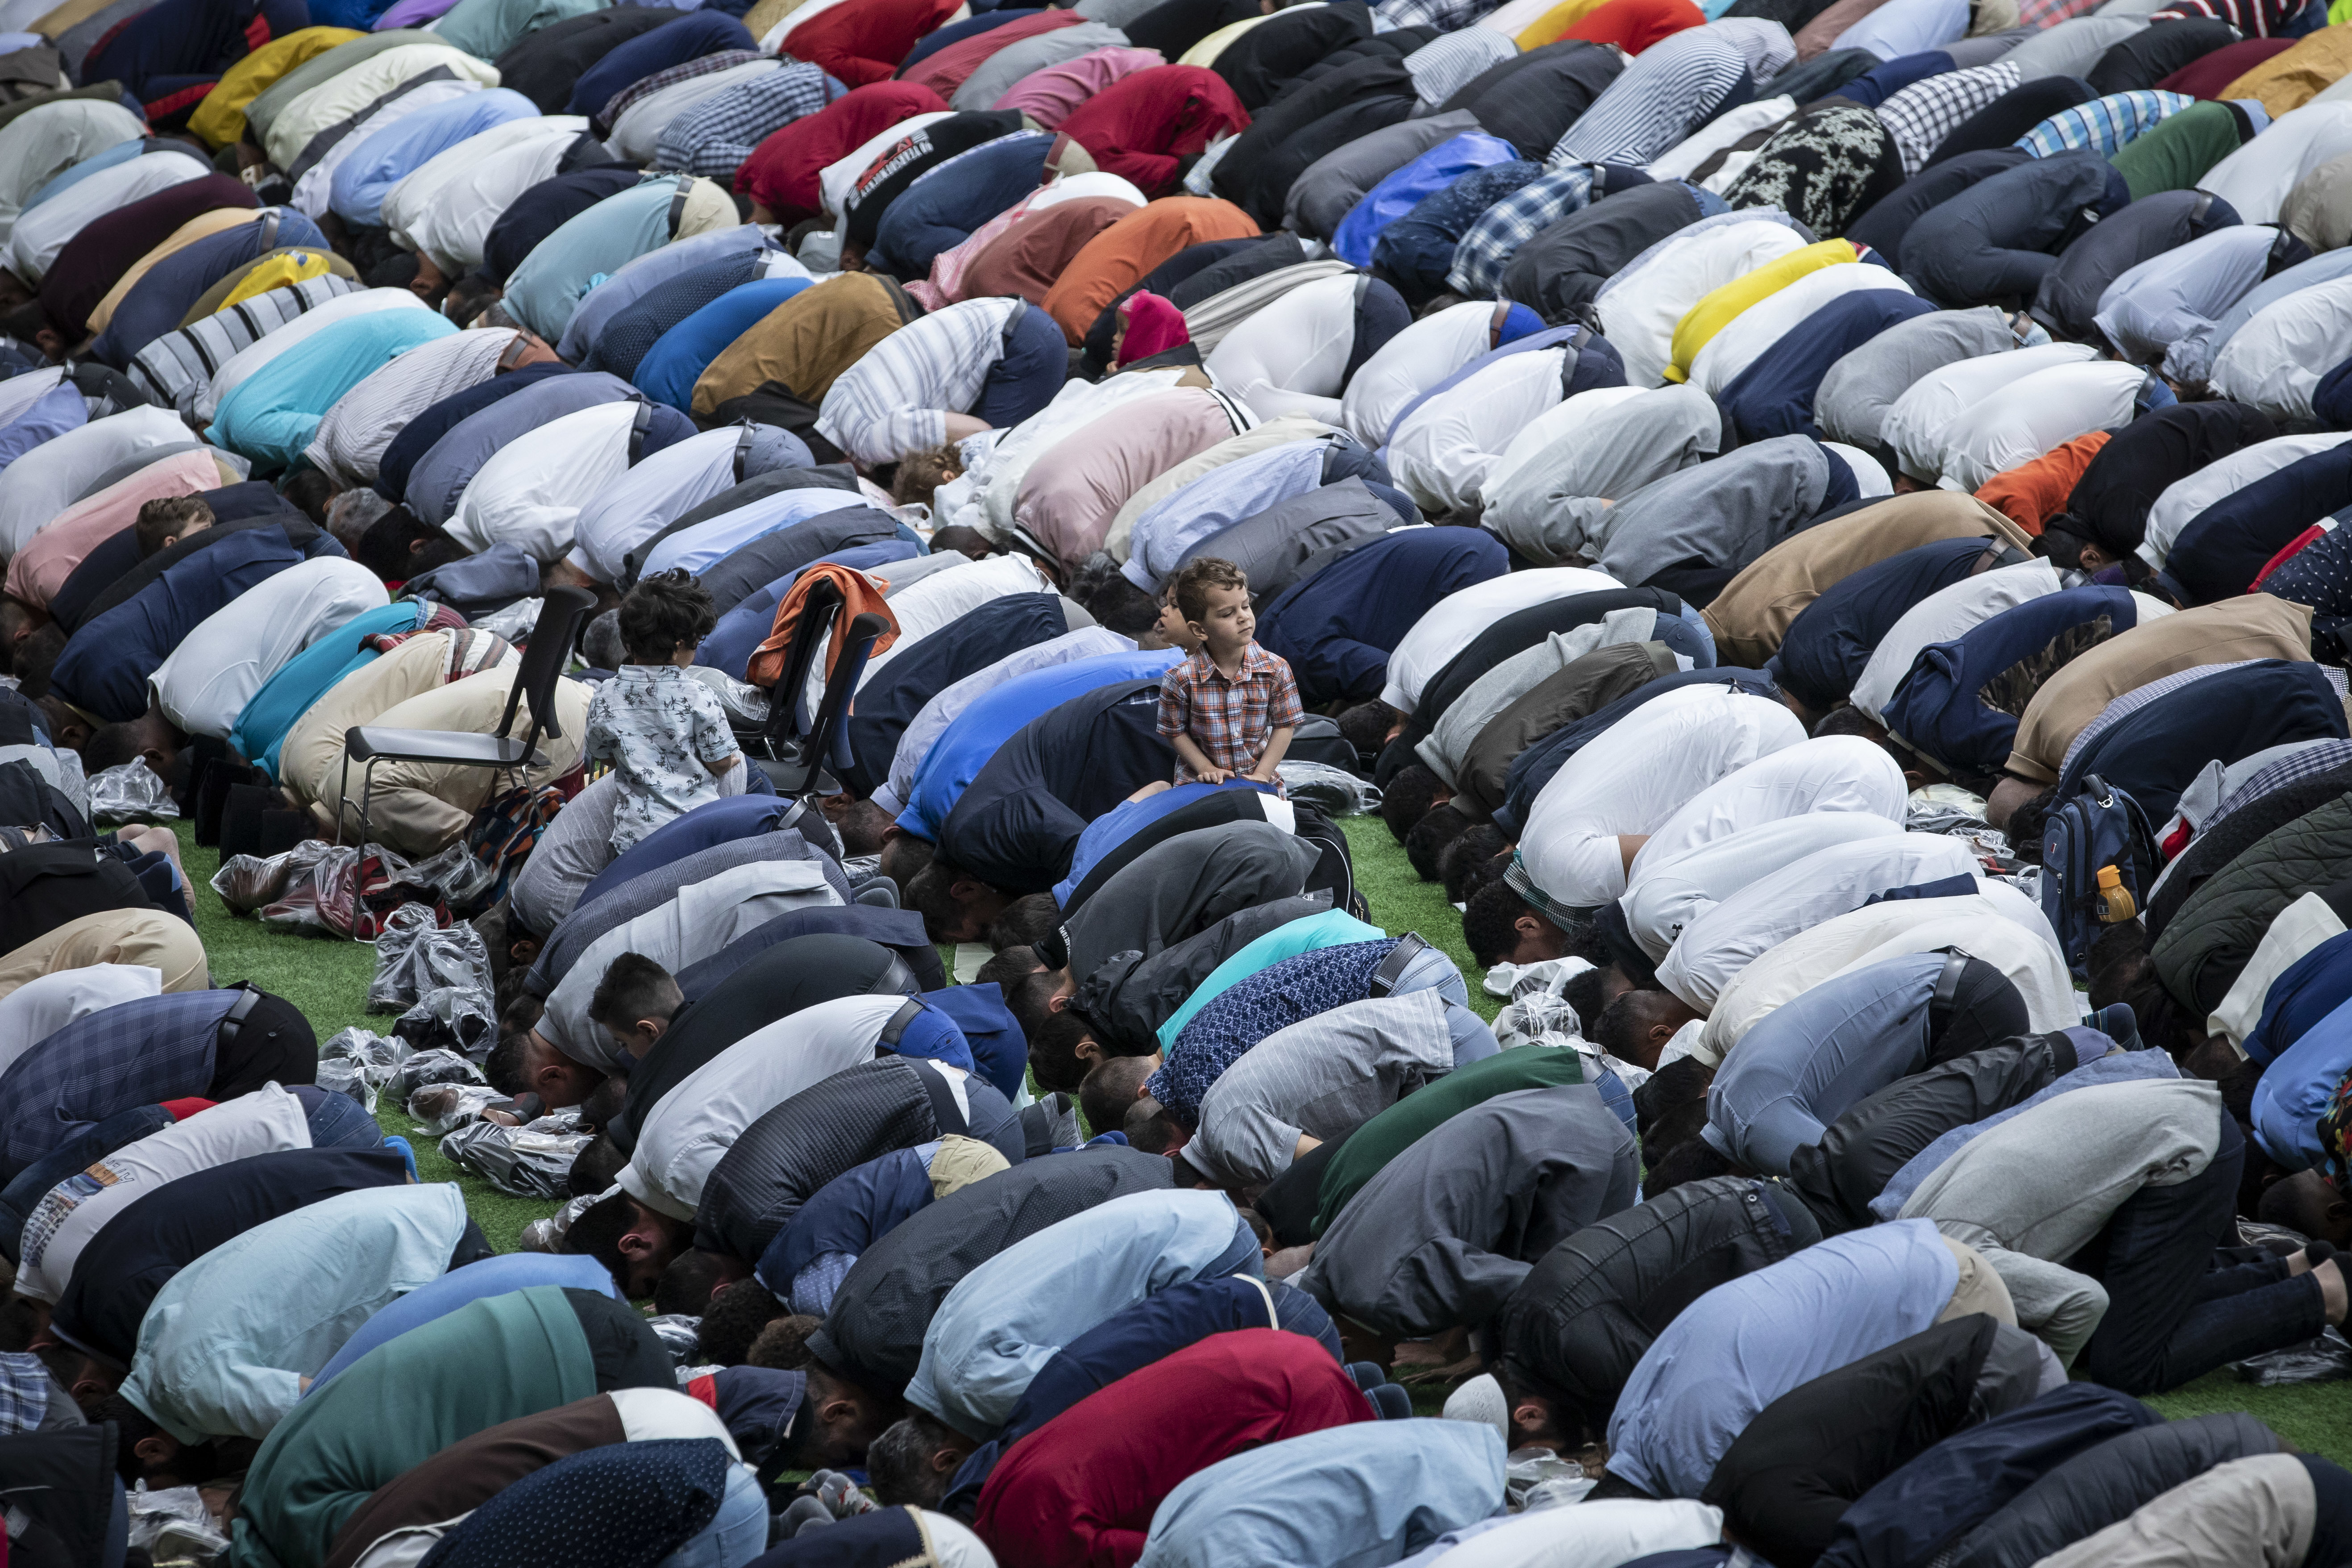 Muslims offer prayers during the first day of Eid al-Fitr, which marks the end of the holy fasting month of Ramadan, at B.C. Place in Vancouver on June 4, 2019. (Ben Nelms/CBC)